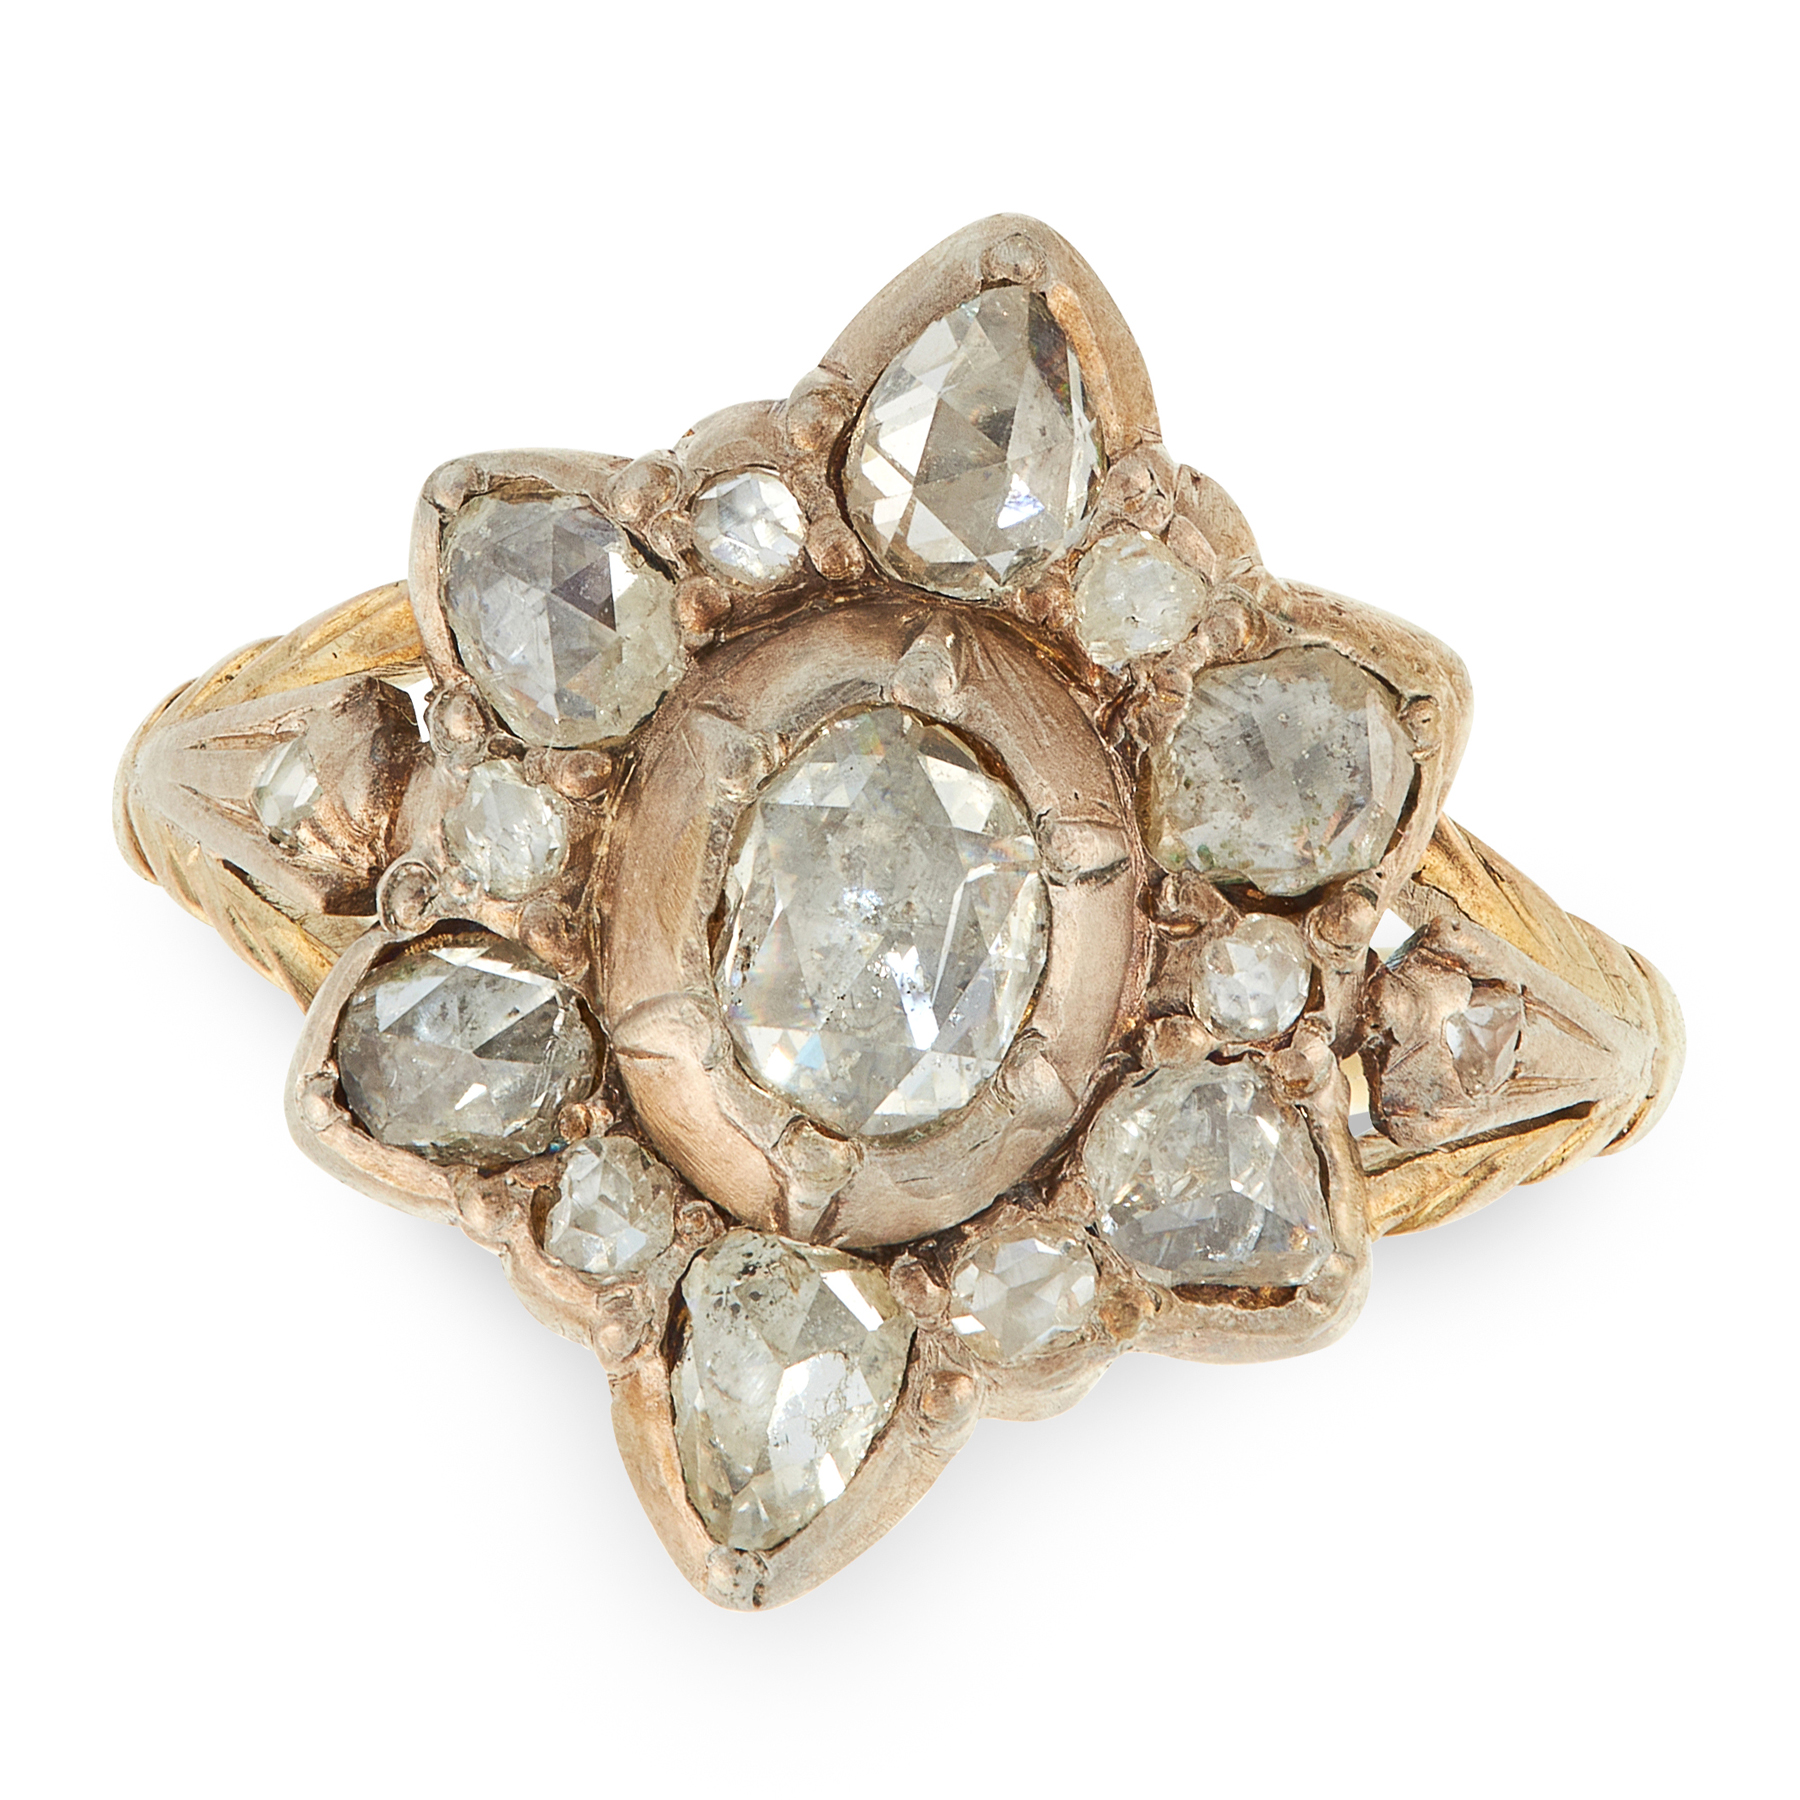 AN ANTIQUE DIAMOND RING, 19TH CENTURY in yellow gold and silver, set with a central rose cut diamond